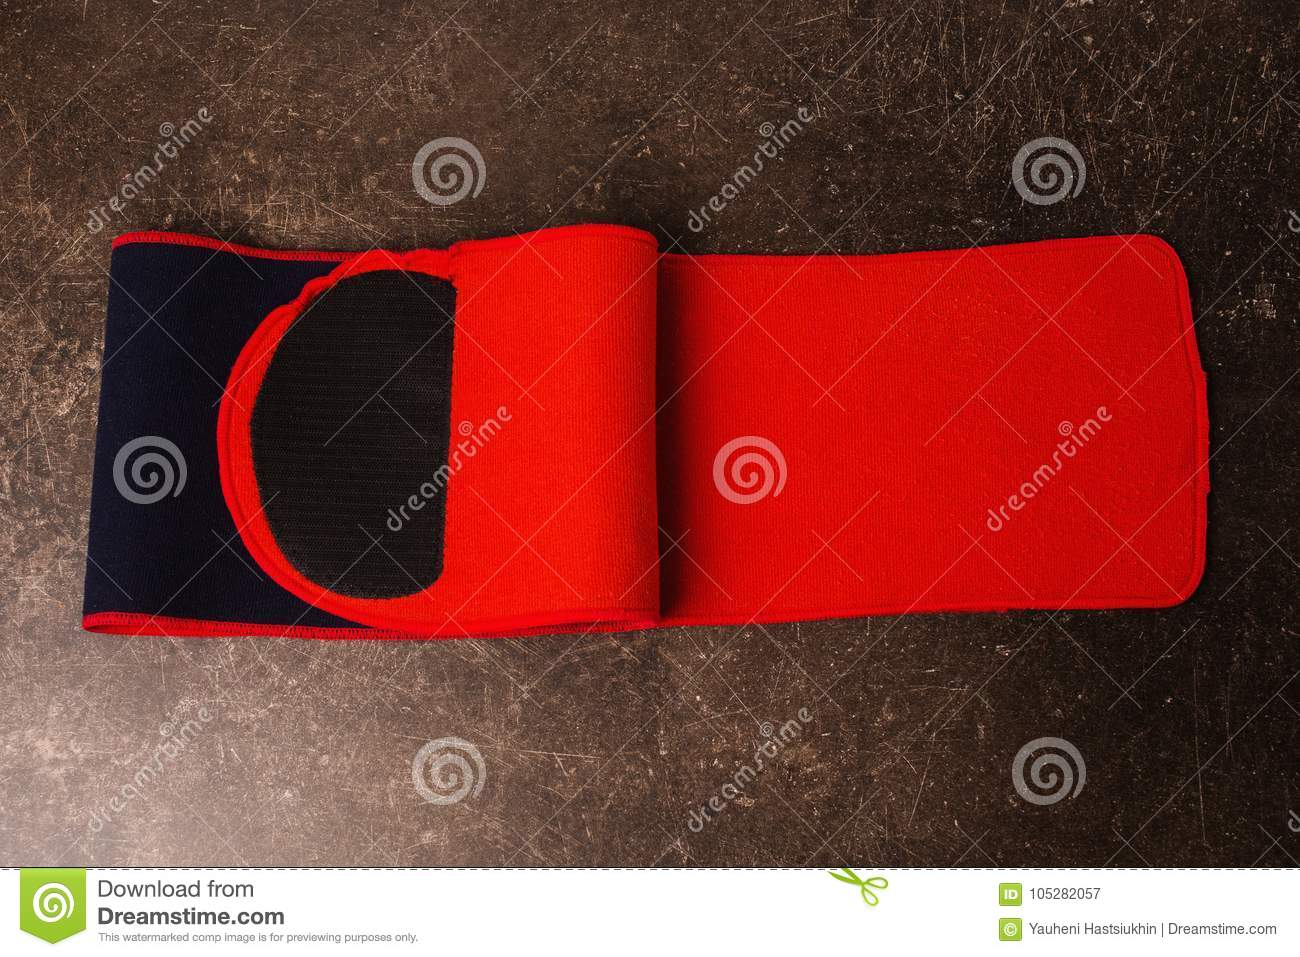 Belt for weight loss on a dark marble background.